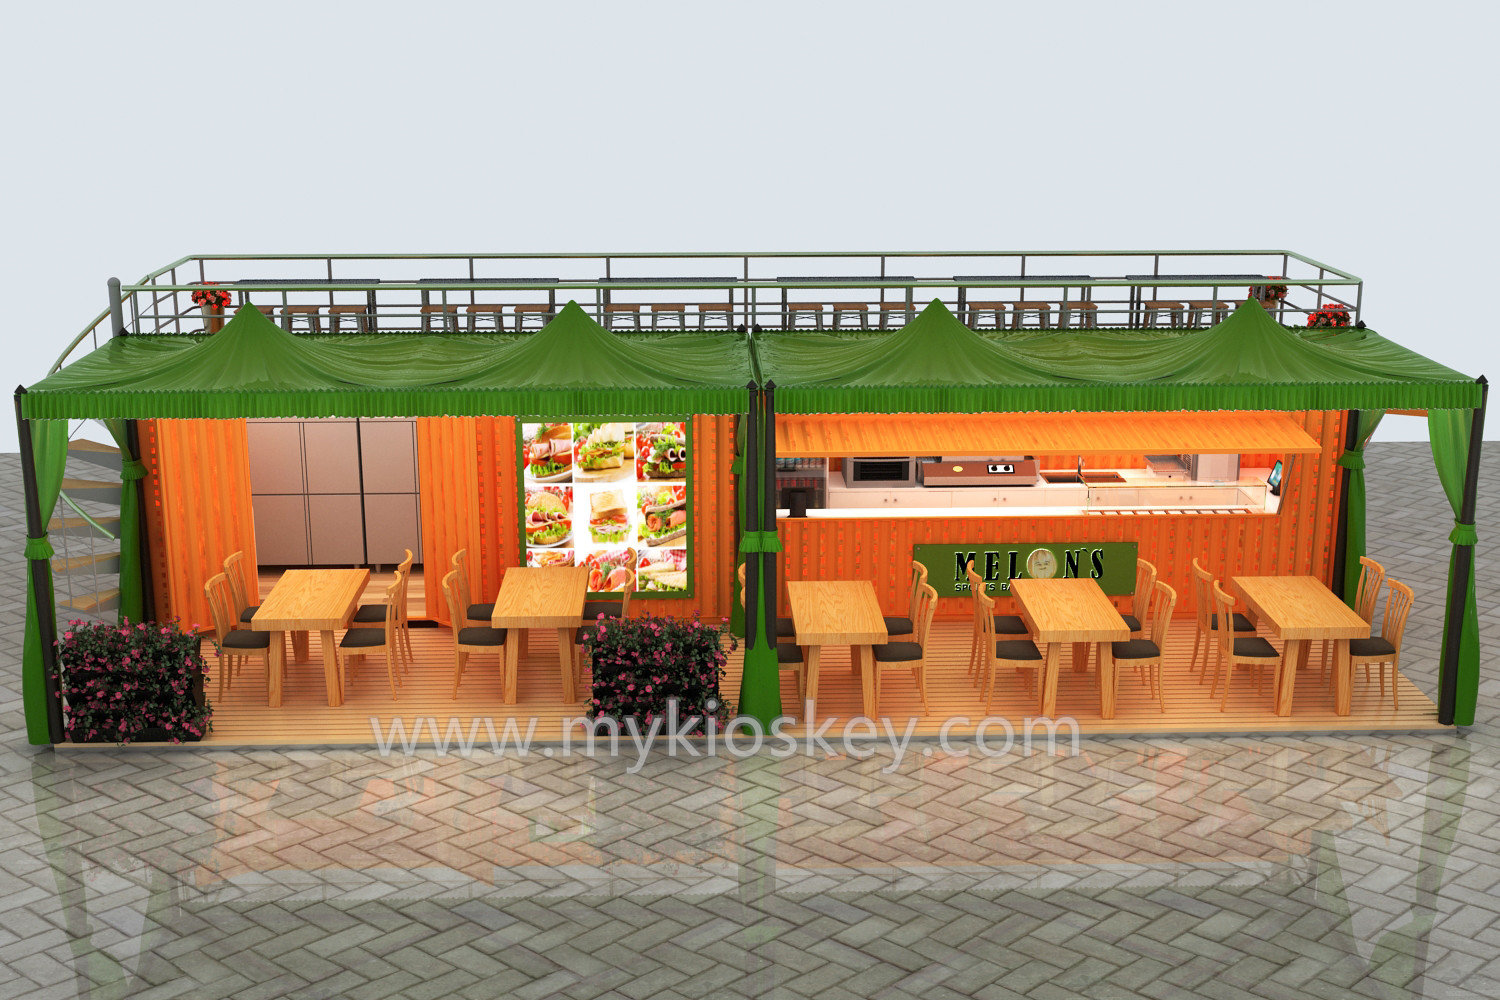 40 Feet Container Kiosk With Fast Food Shop For Sale